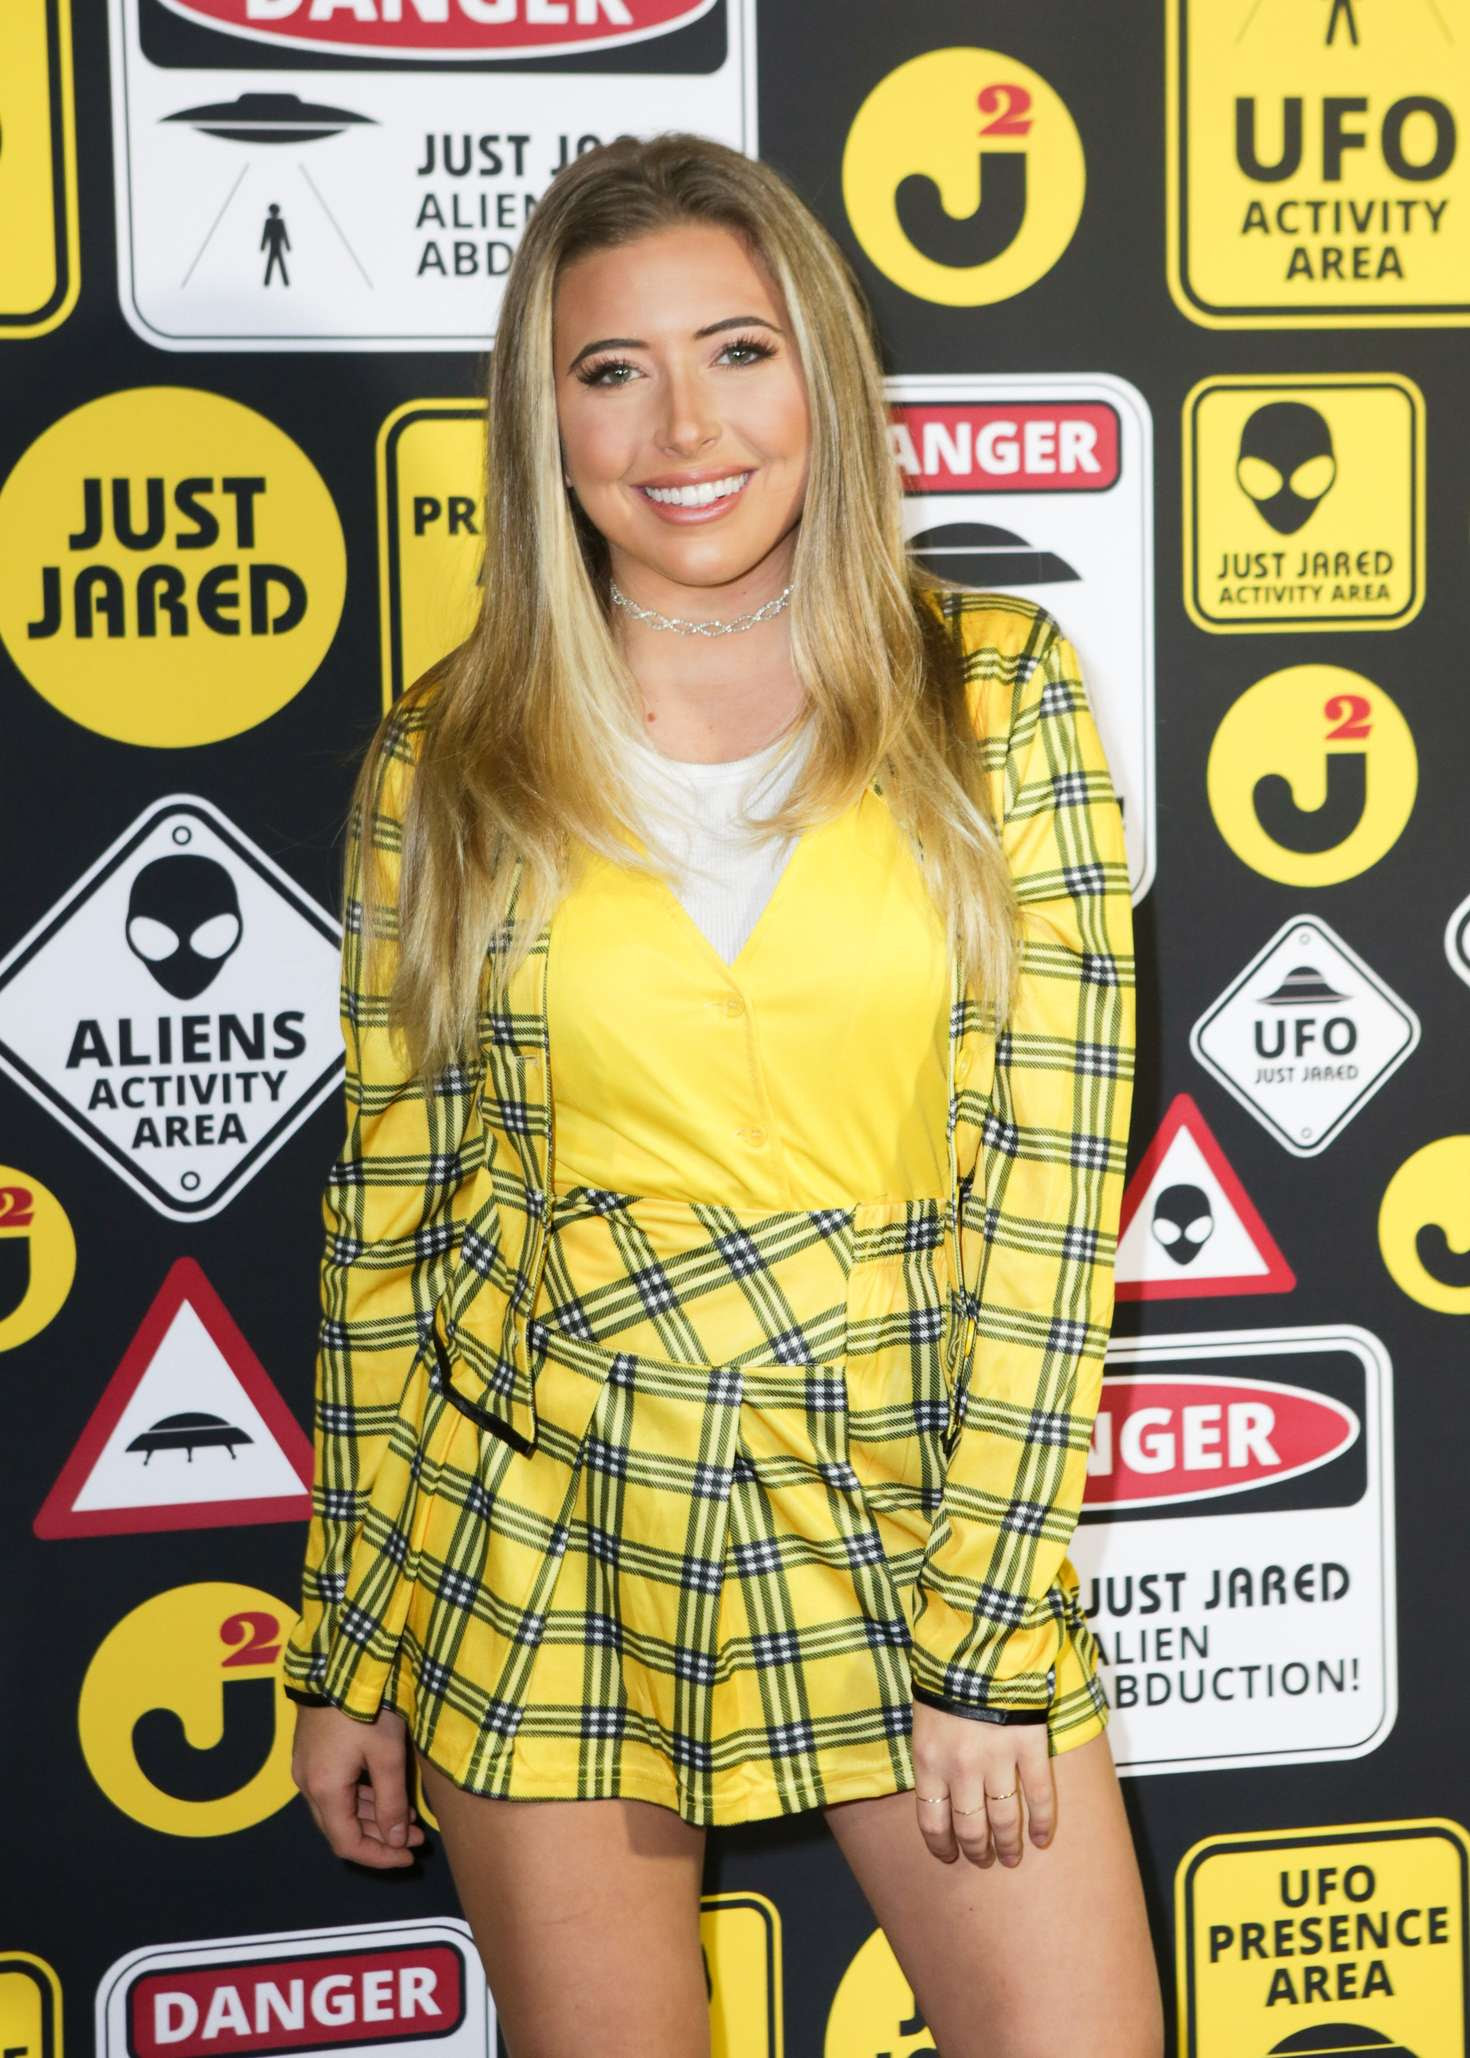 Hunter Daily Salomon – Just Jared Halloween Party 2016 in Los Angeles